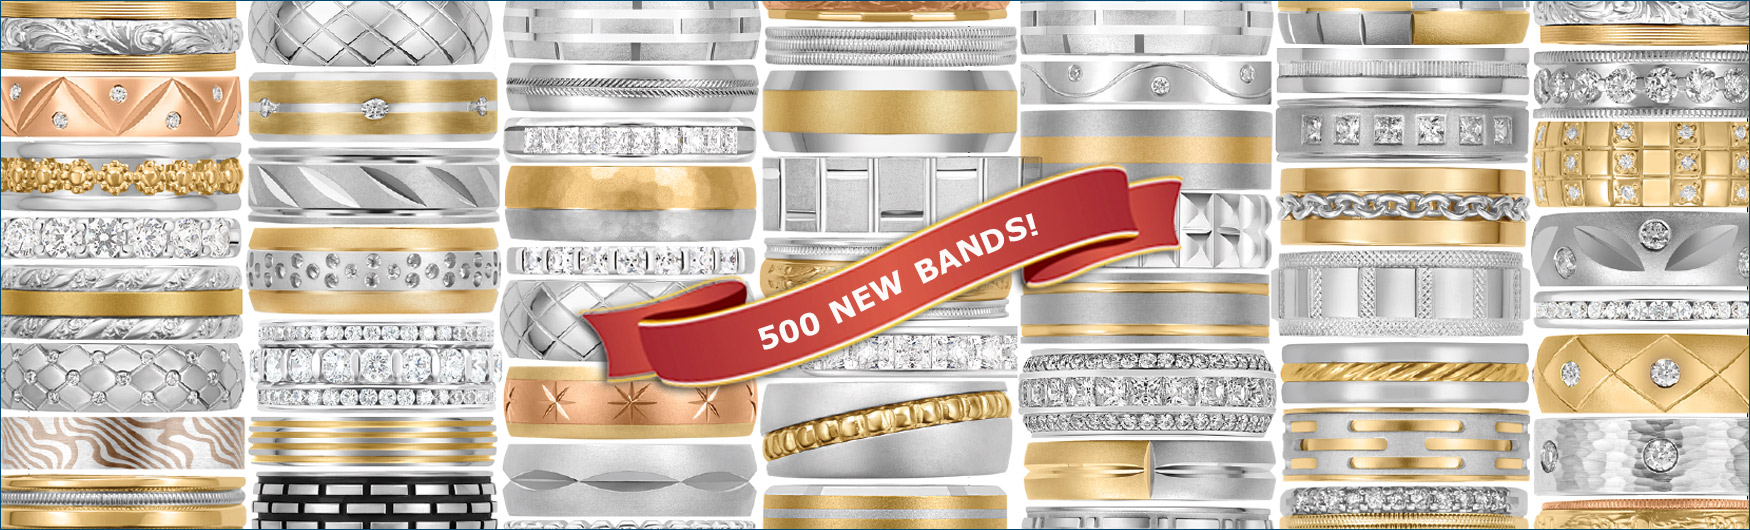 500 New Bands